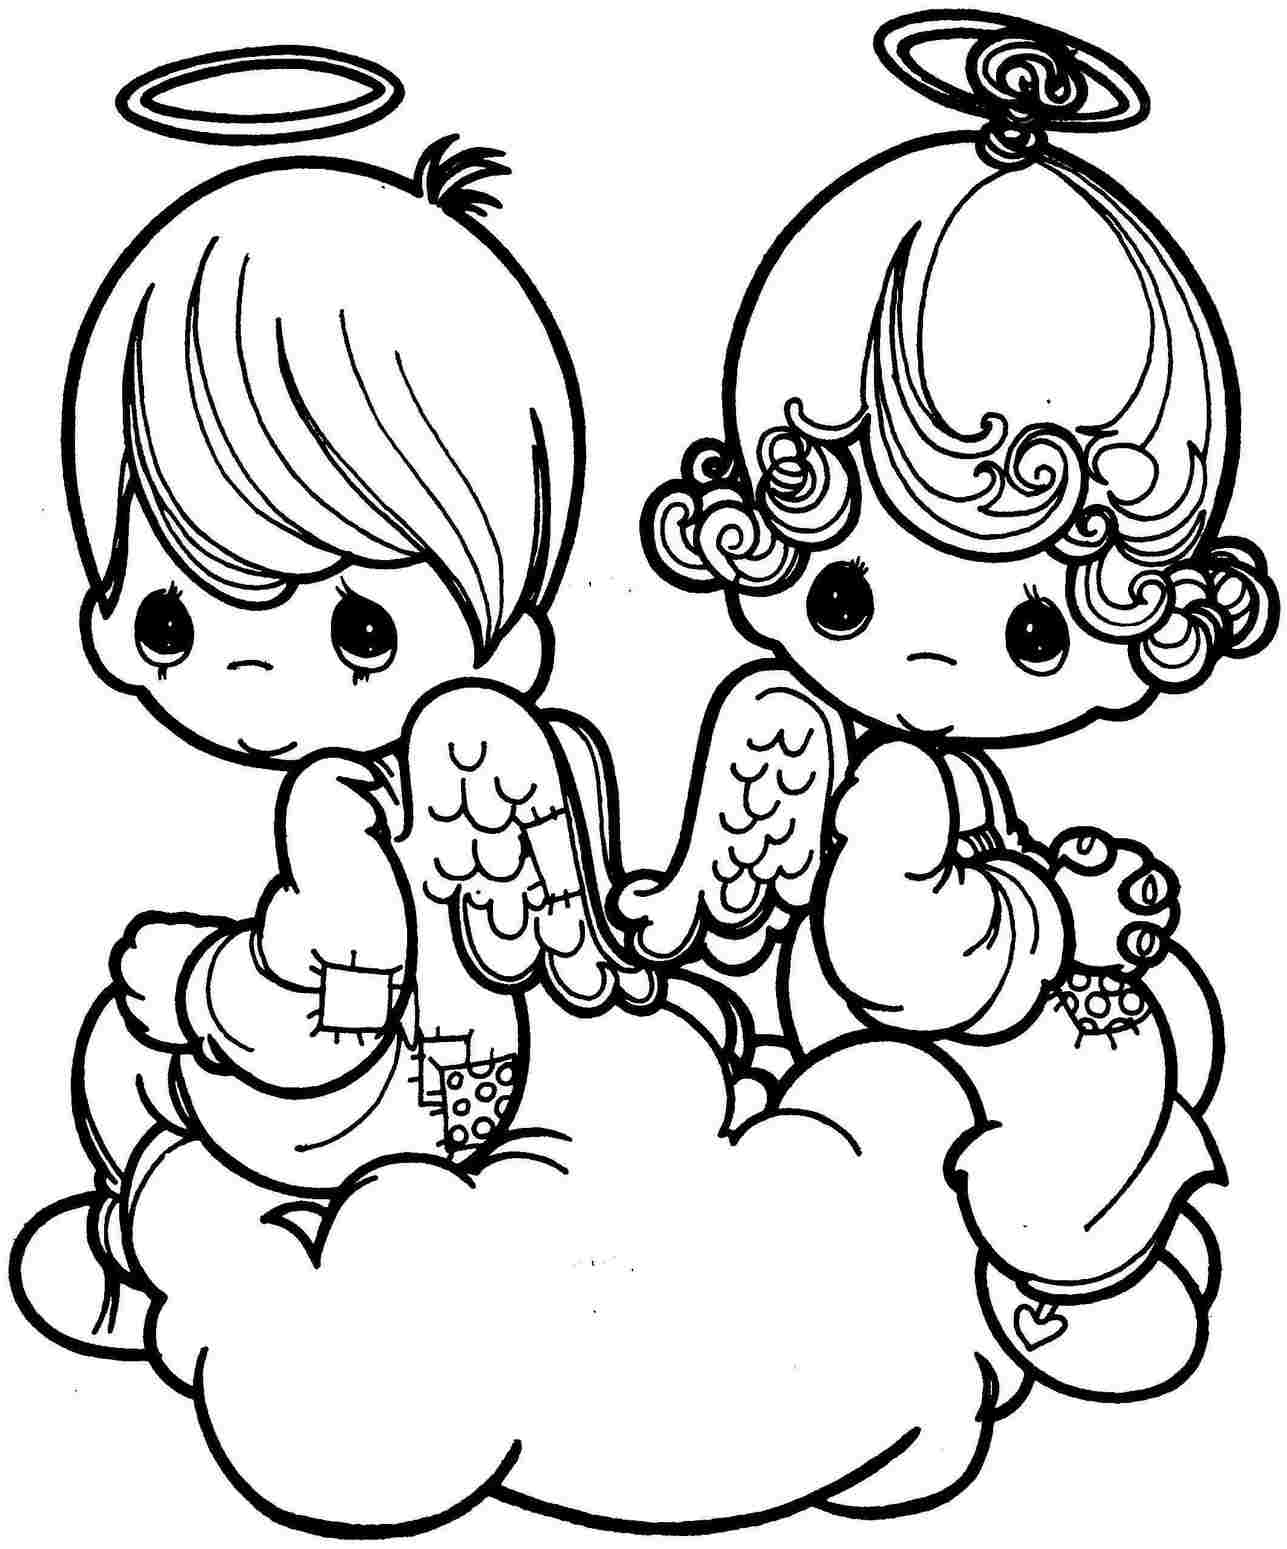 Cupid coloring pages best coloring pages for kids for Disegni da colorare angeli